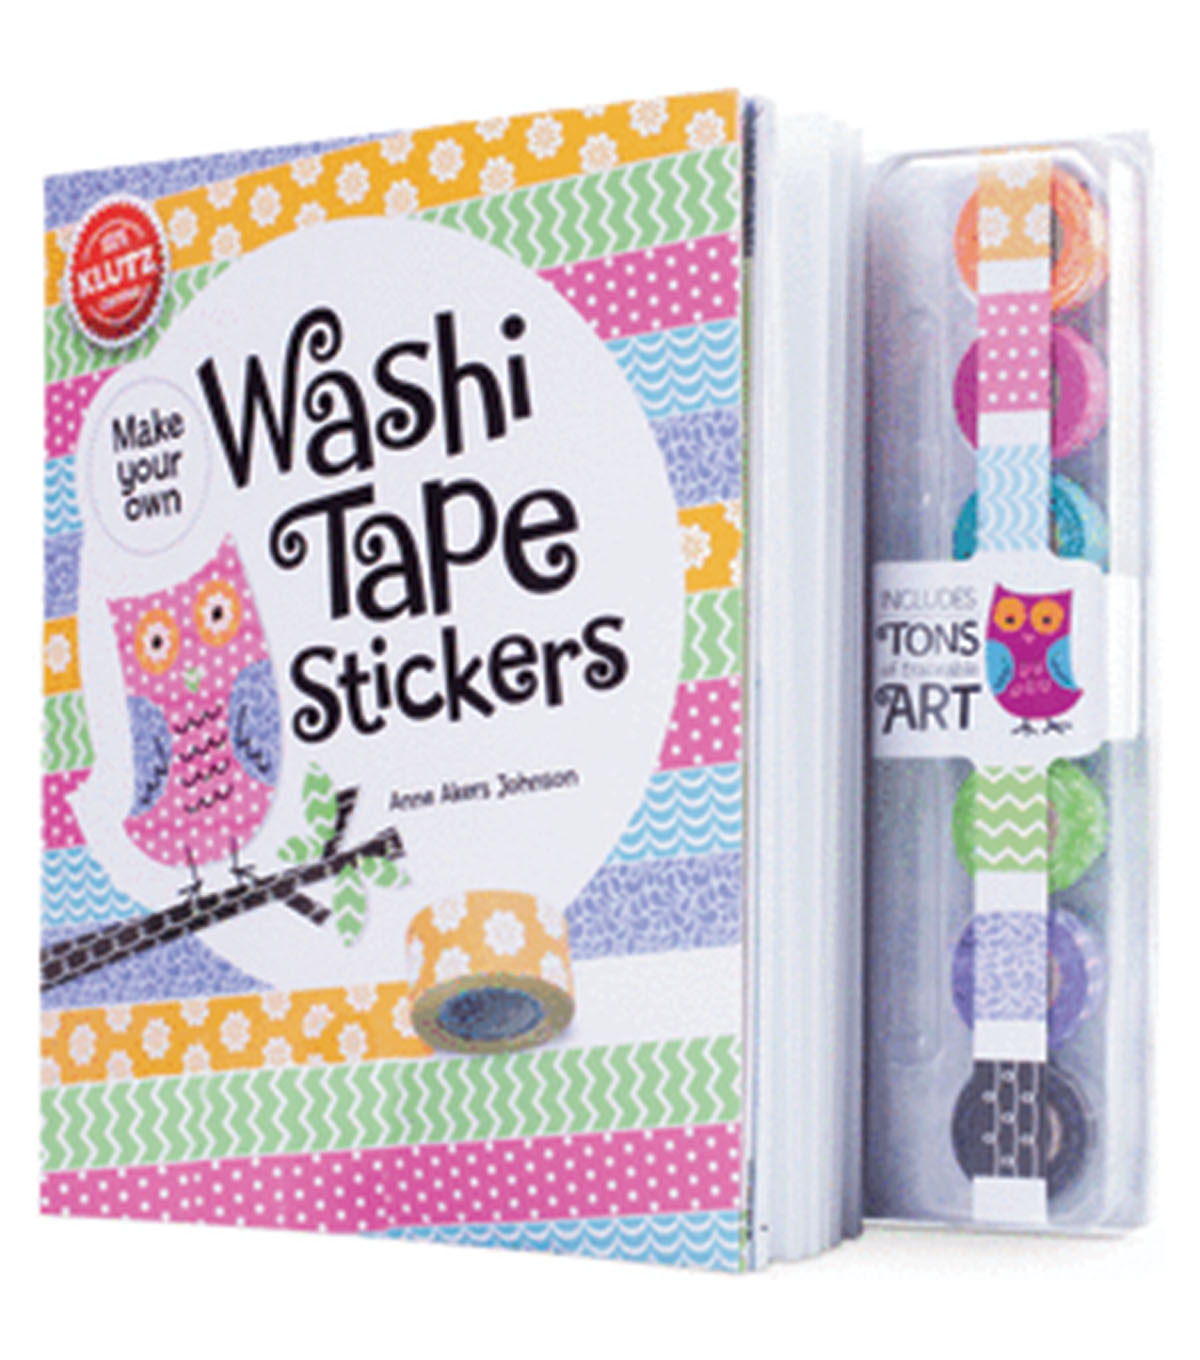 Washi Tape Sticker Book